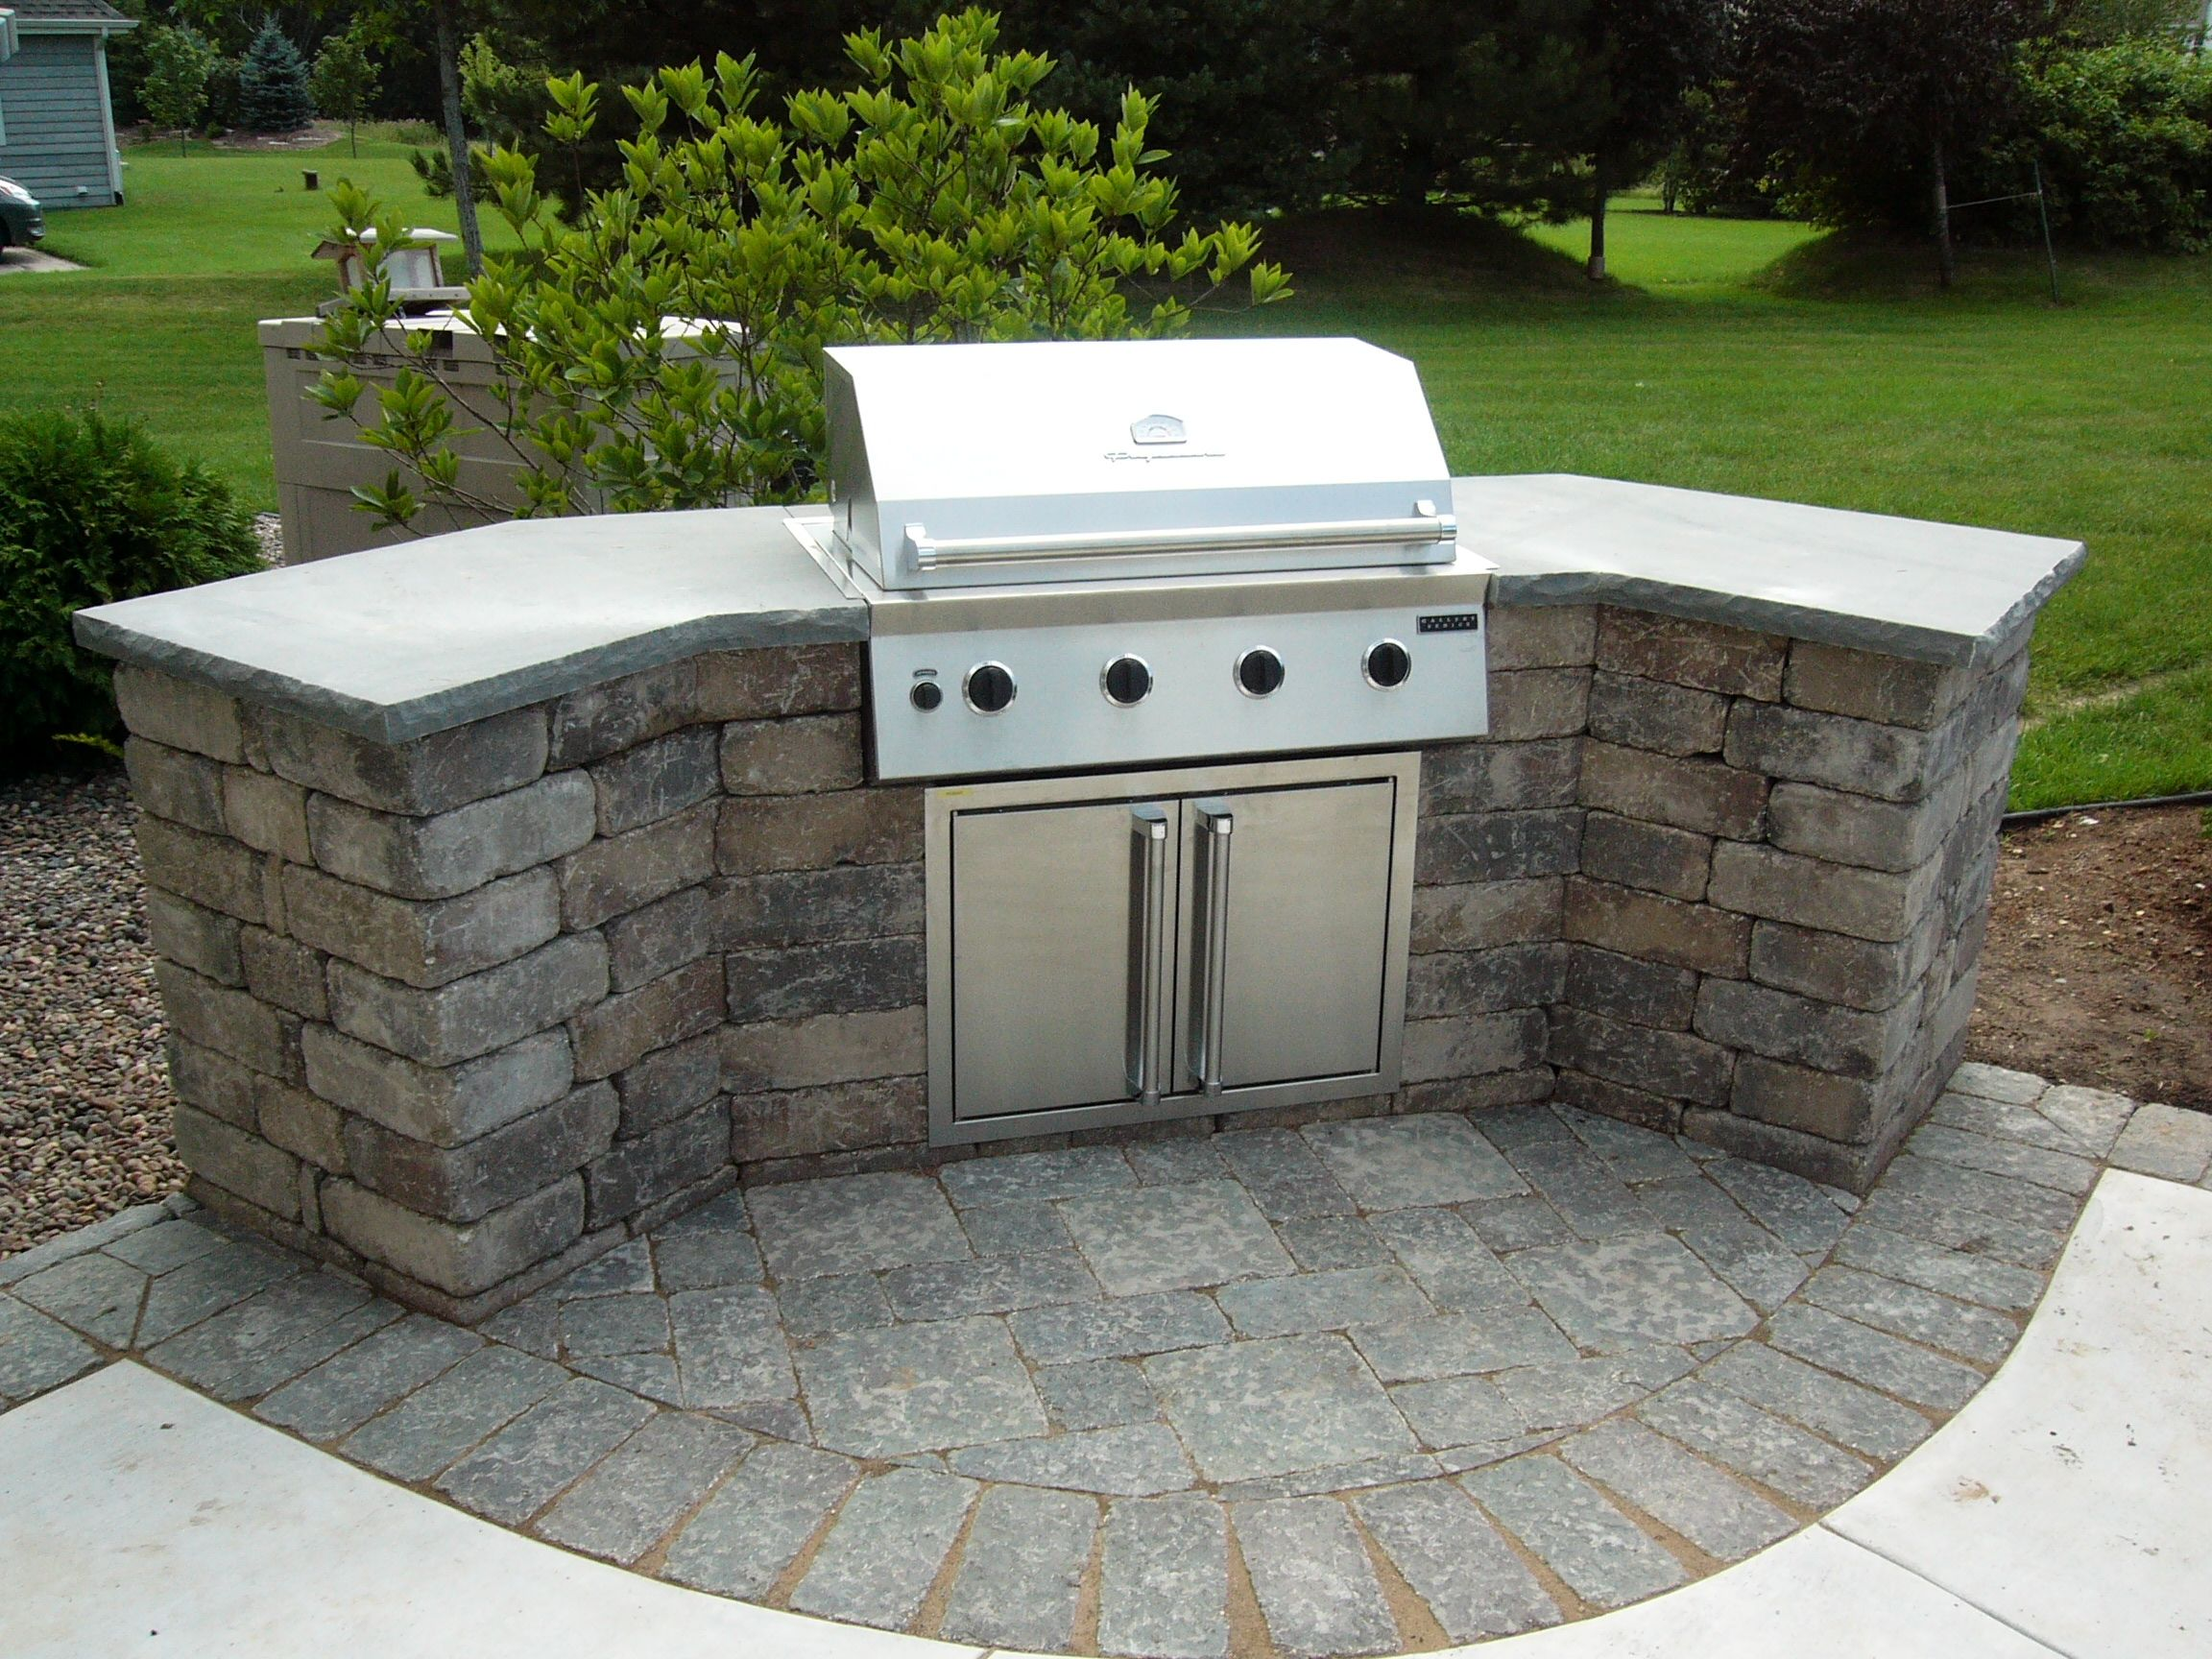 Gas Grill Built Into Old Quarry Sierra Concrete Block Wall With Bluestone Countertop Simple Outdoor Kitchen Small Outdoor Kitchens Outdoor Kitchen Island